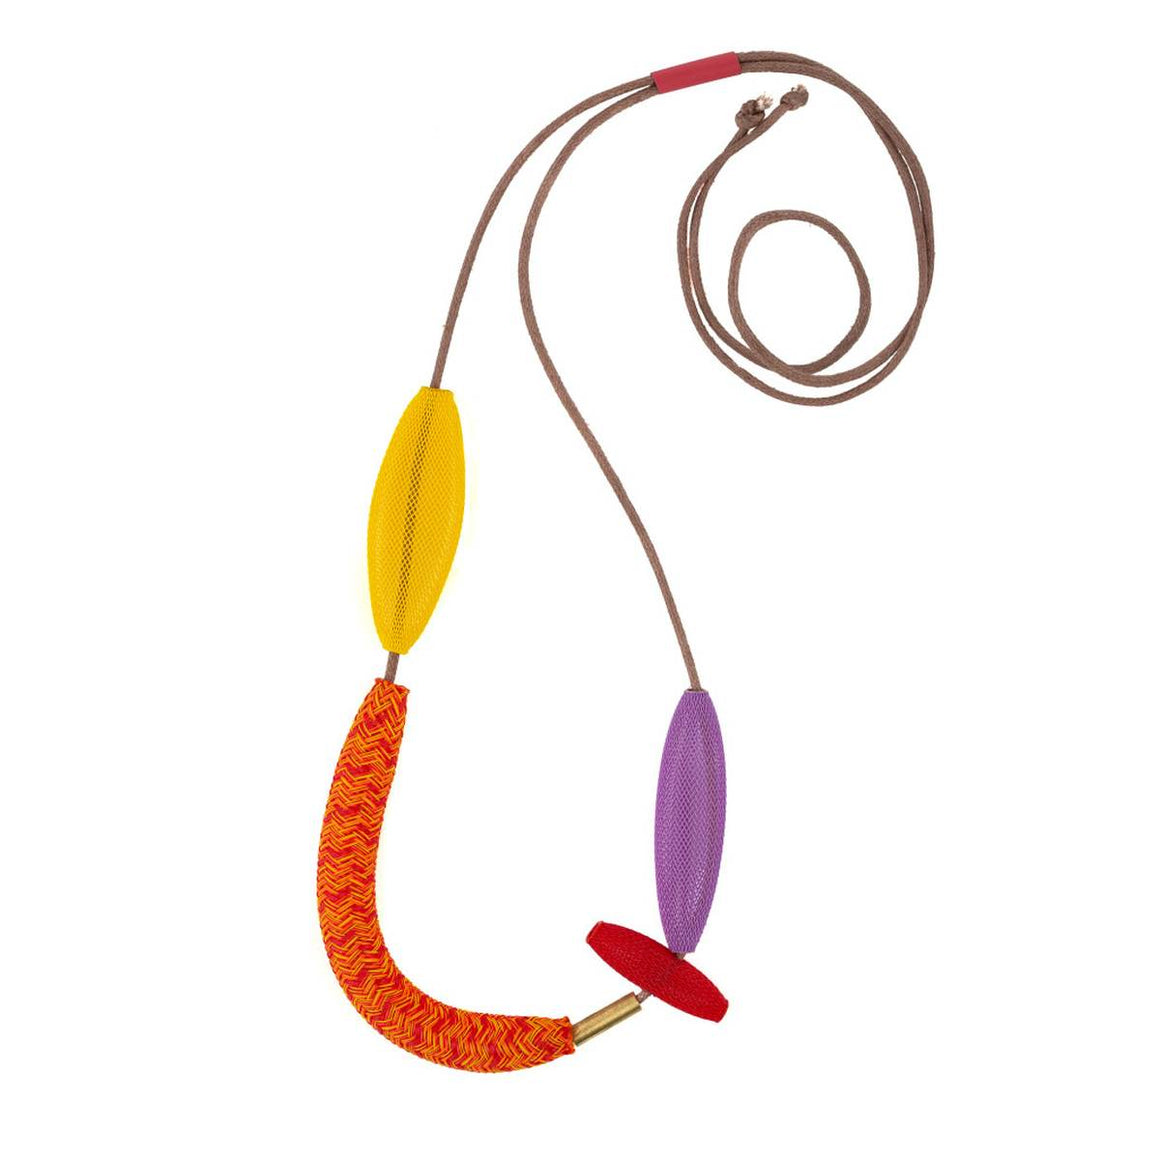 A necklace in variegated red, orange, yellow and purple. Variegated beads made of heat tr seated nylon are strung on a waxed cotton cord.